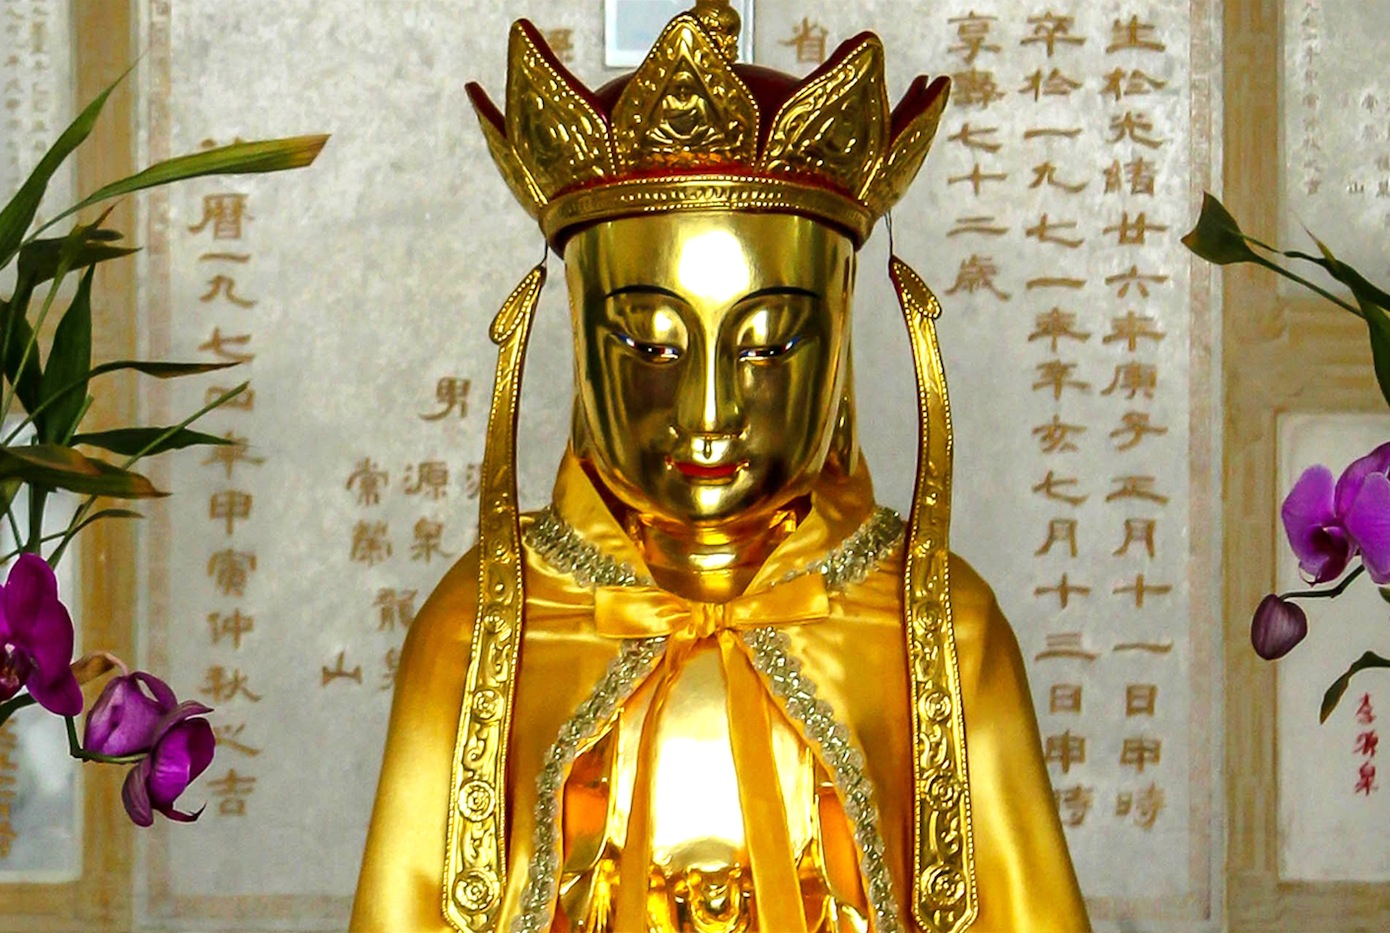 The Guardian of the Dead - Dei Zong Lo Hon Monastery